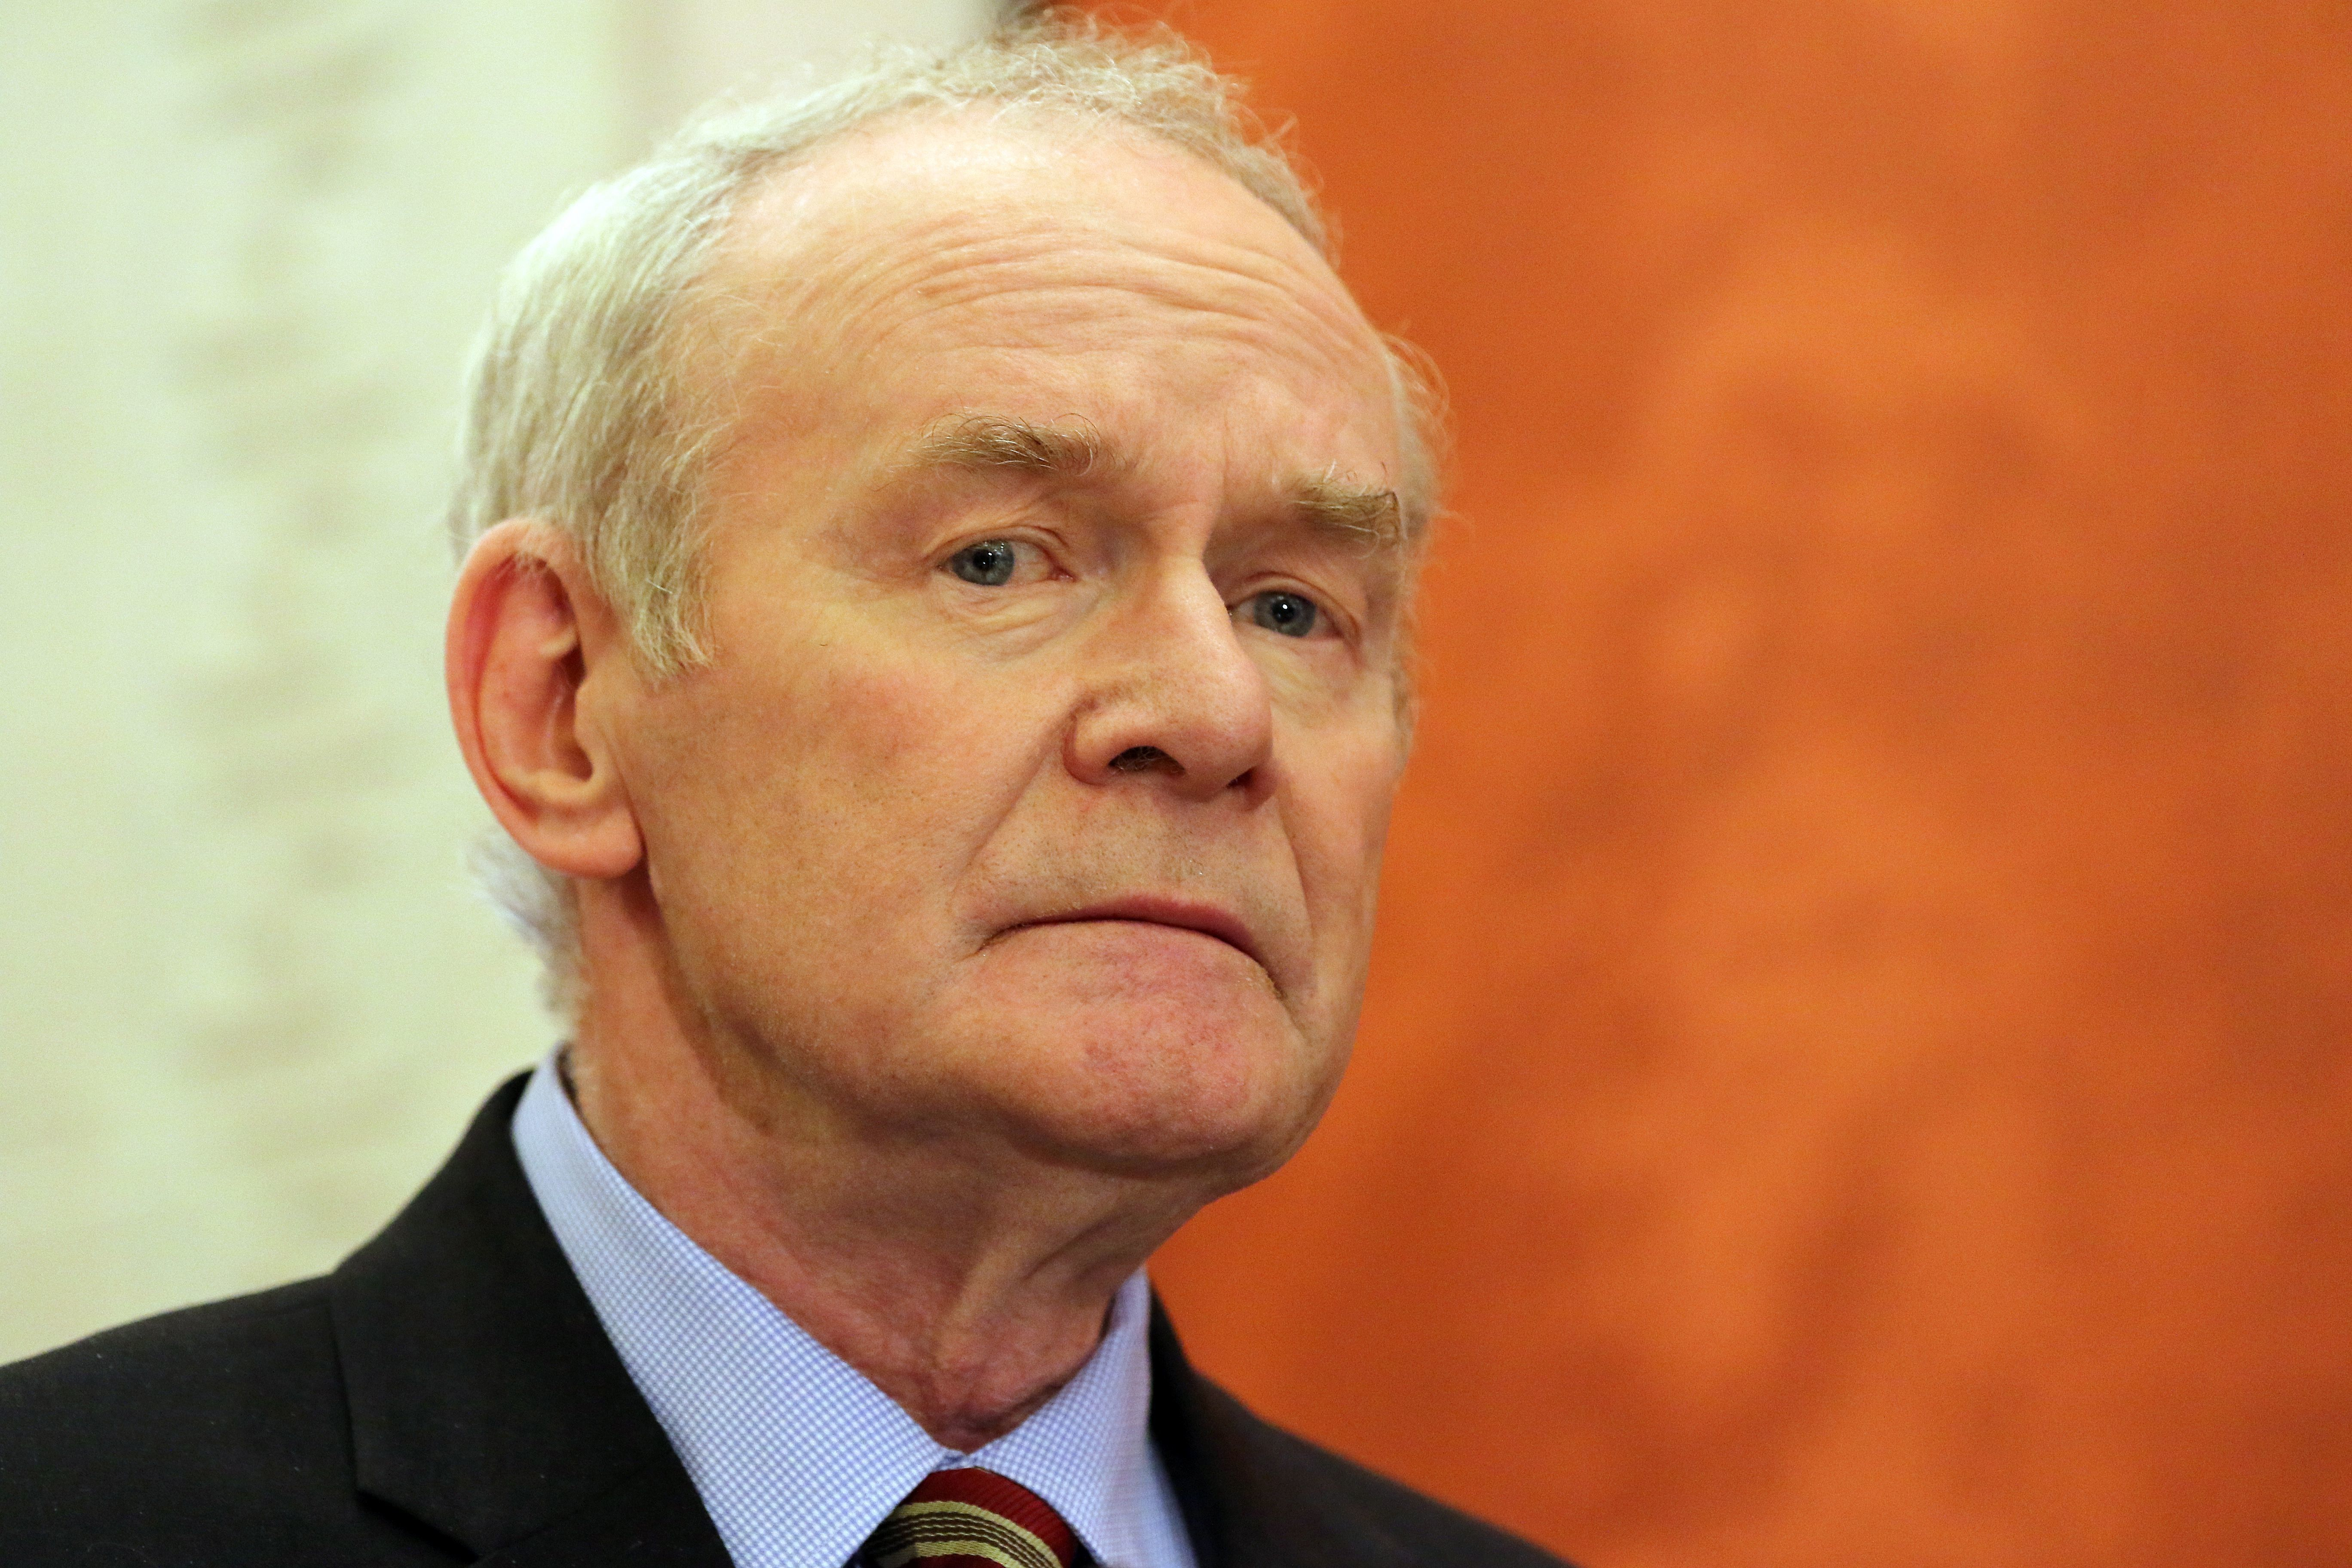 Ex-IRA Commander And Northern Ireland Deputy First Minister